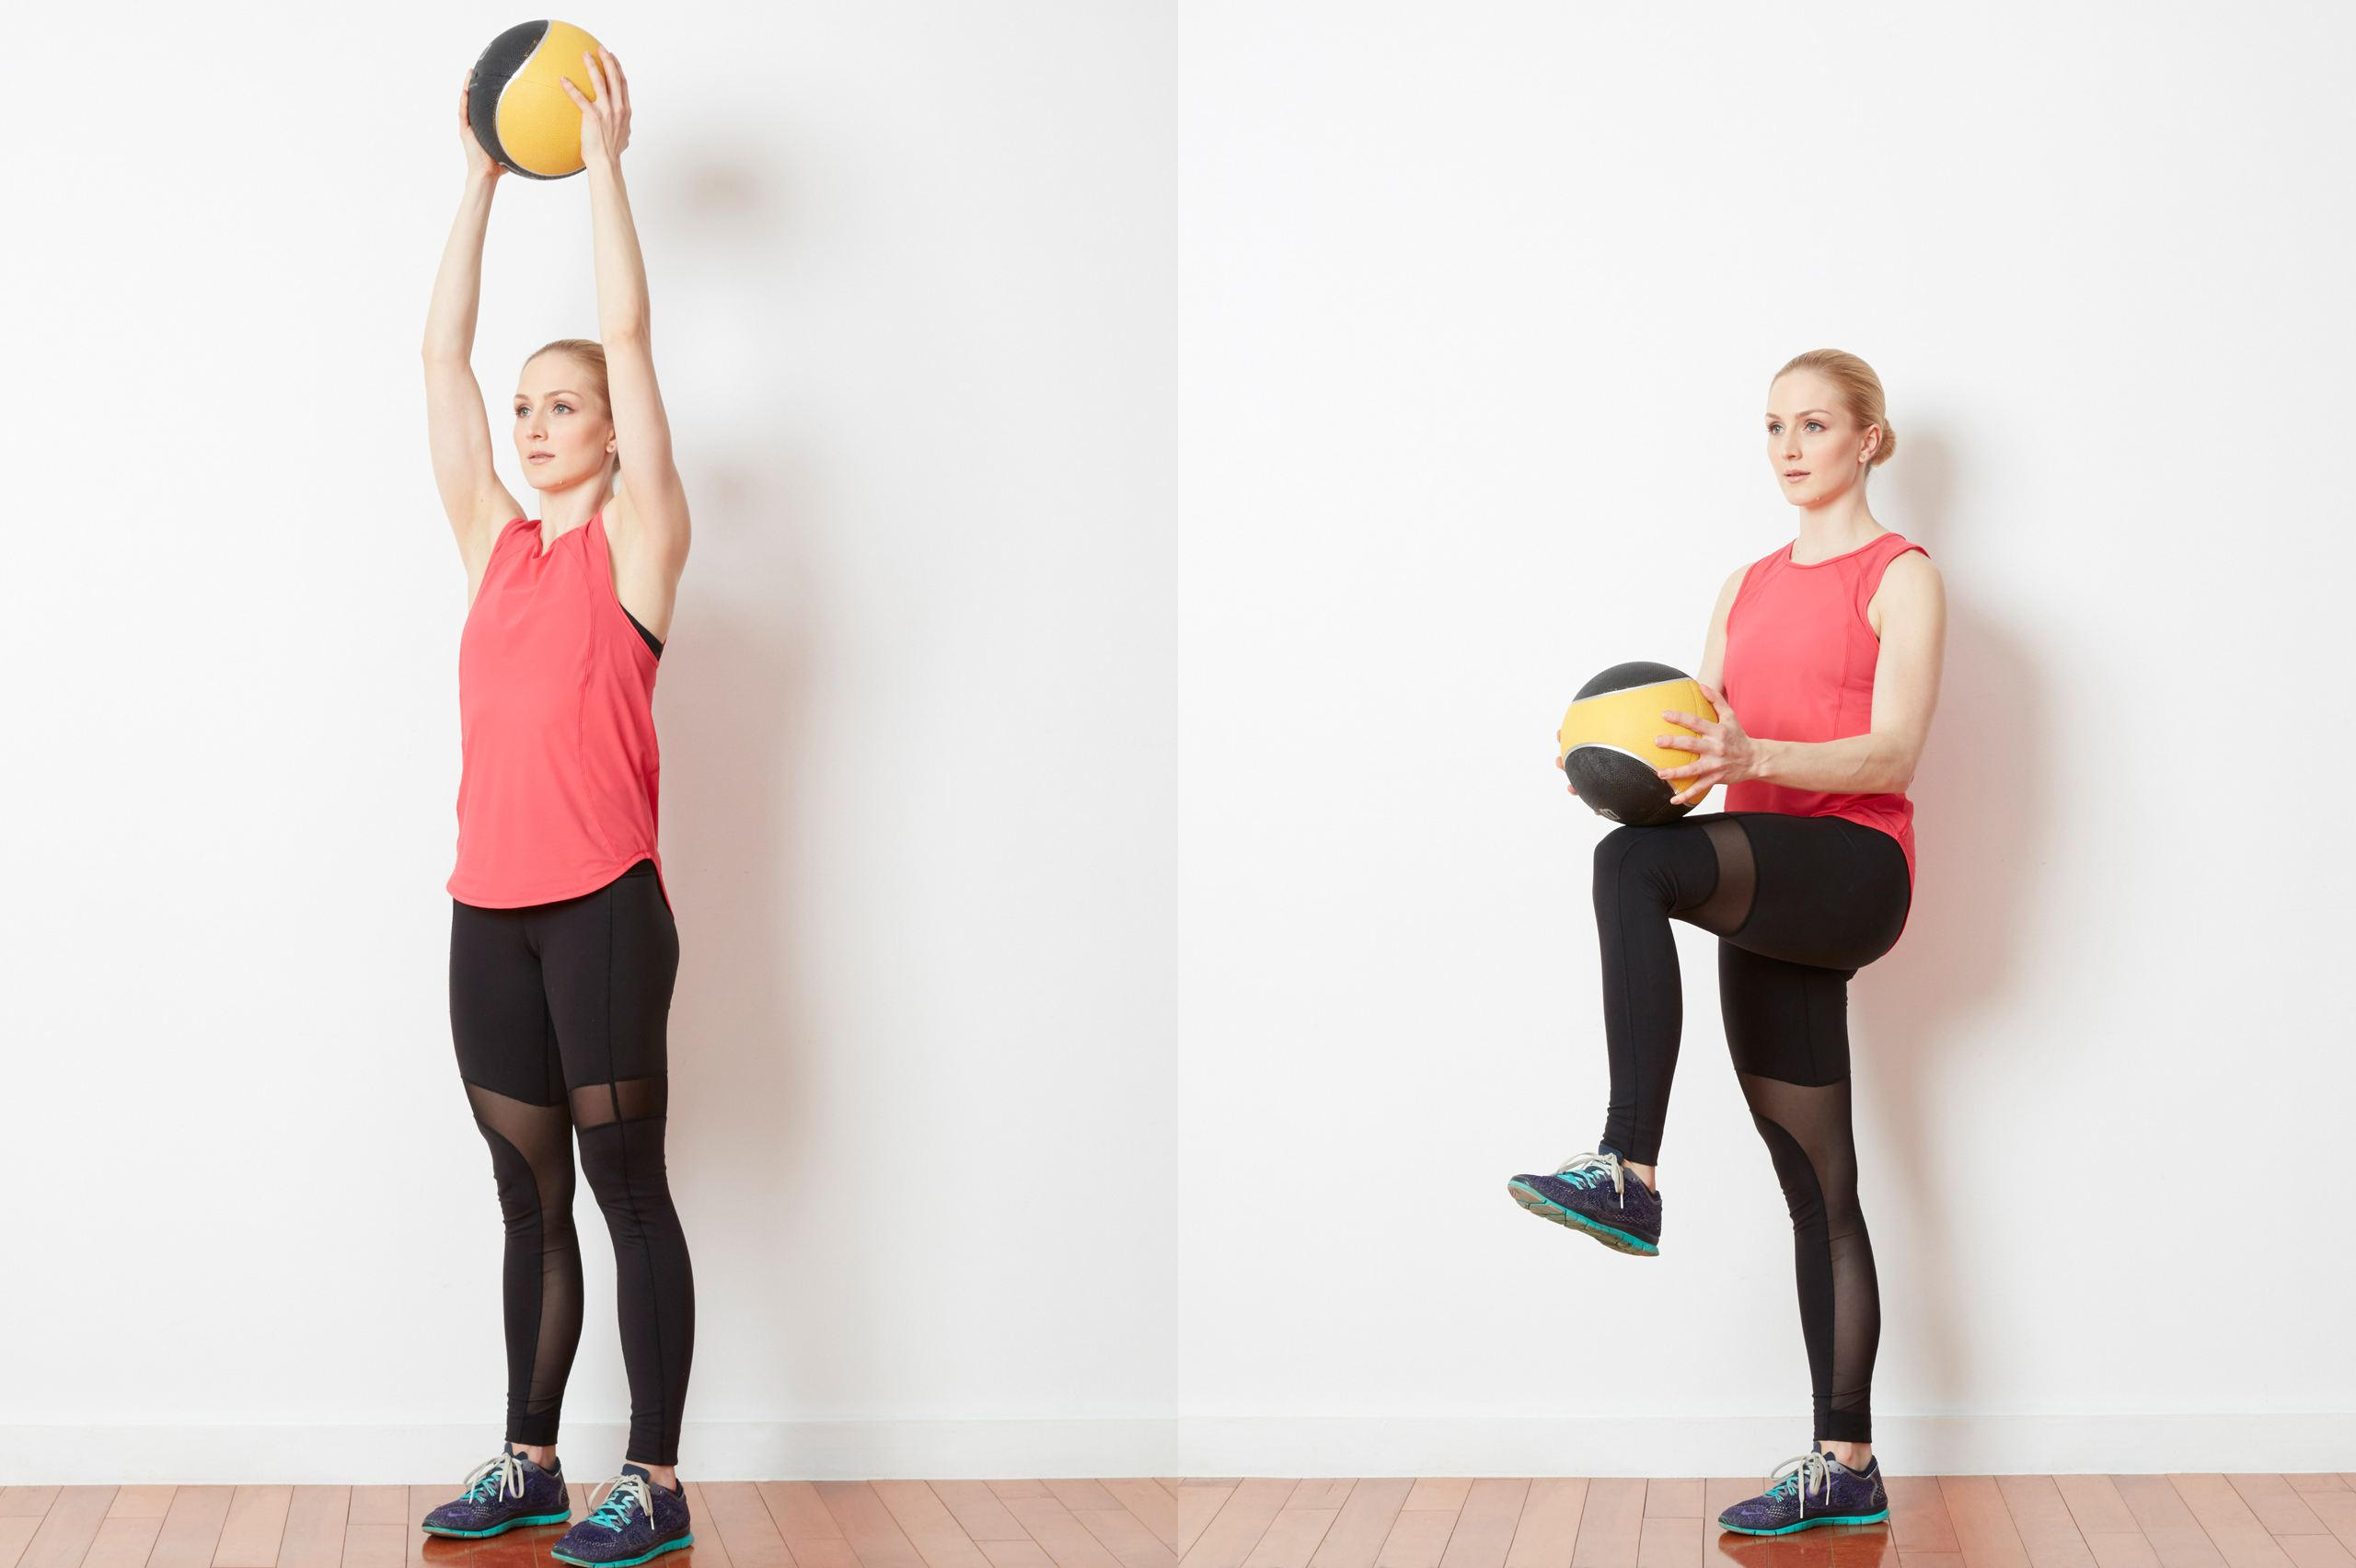 Knee Lifts with a Medicine Ball